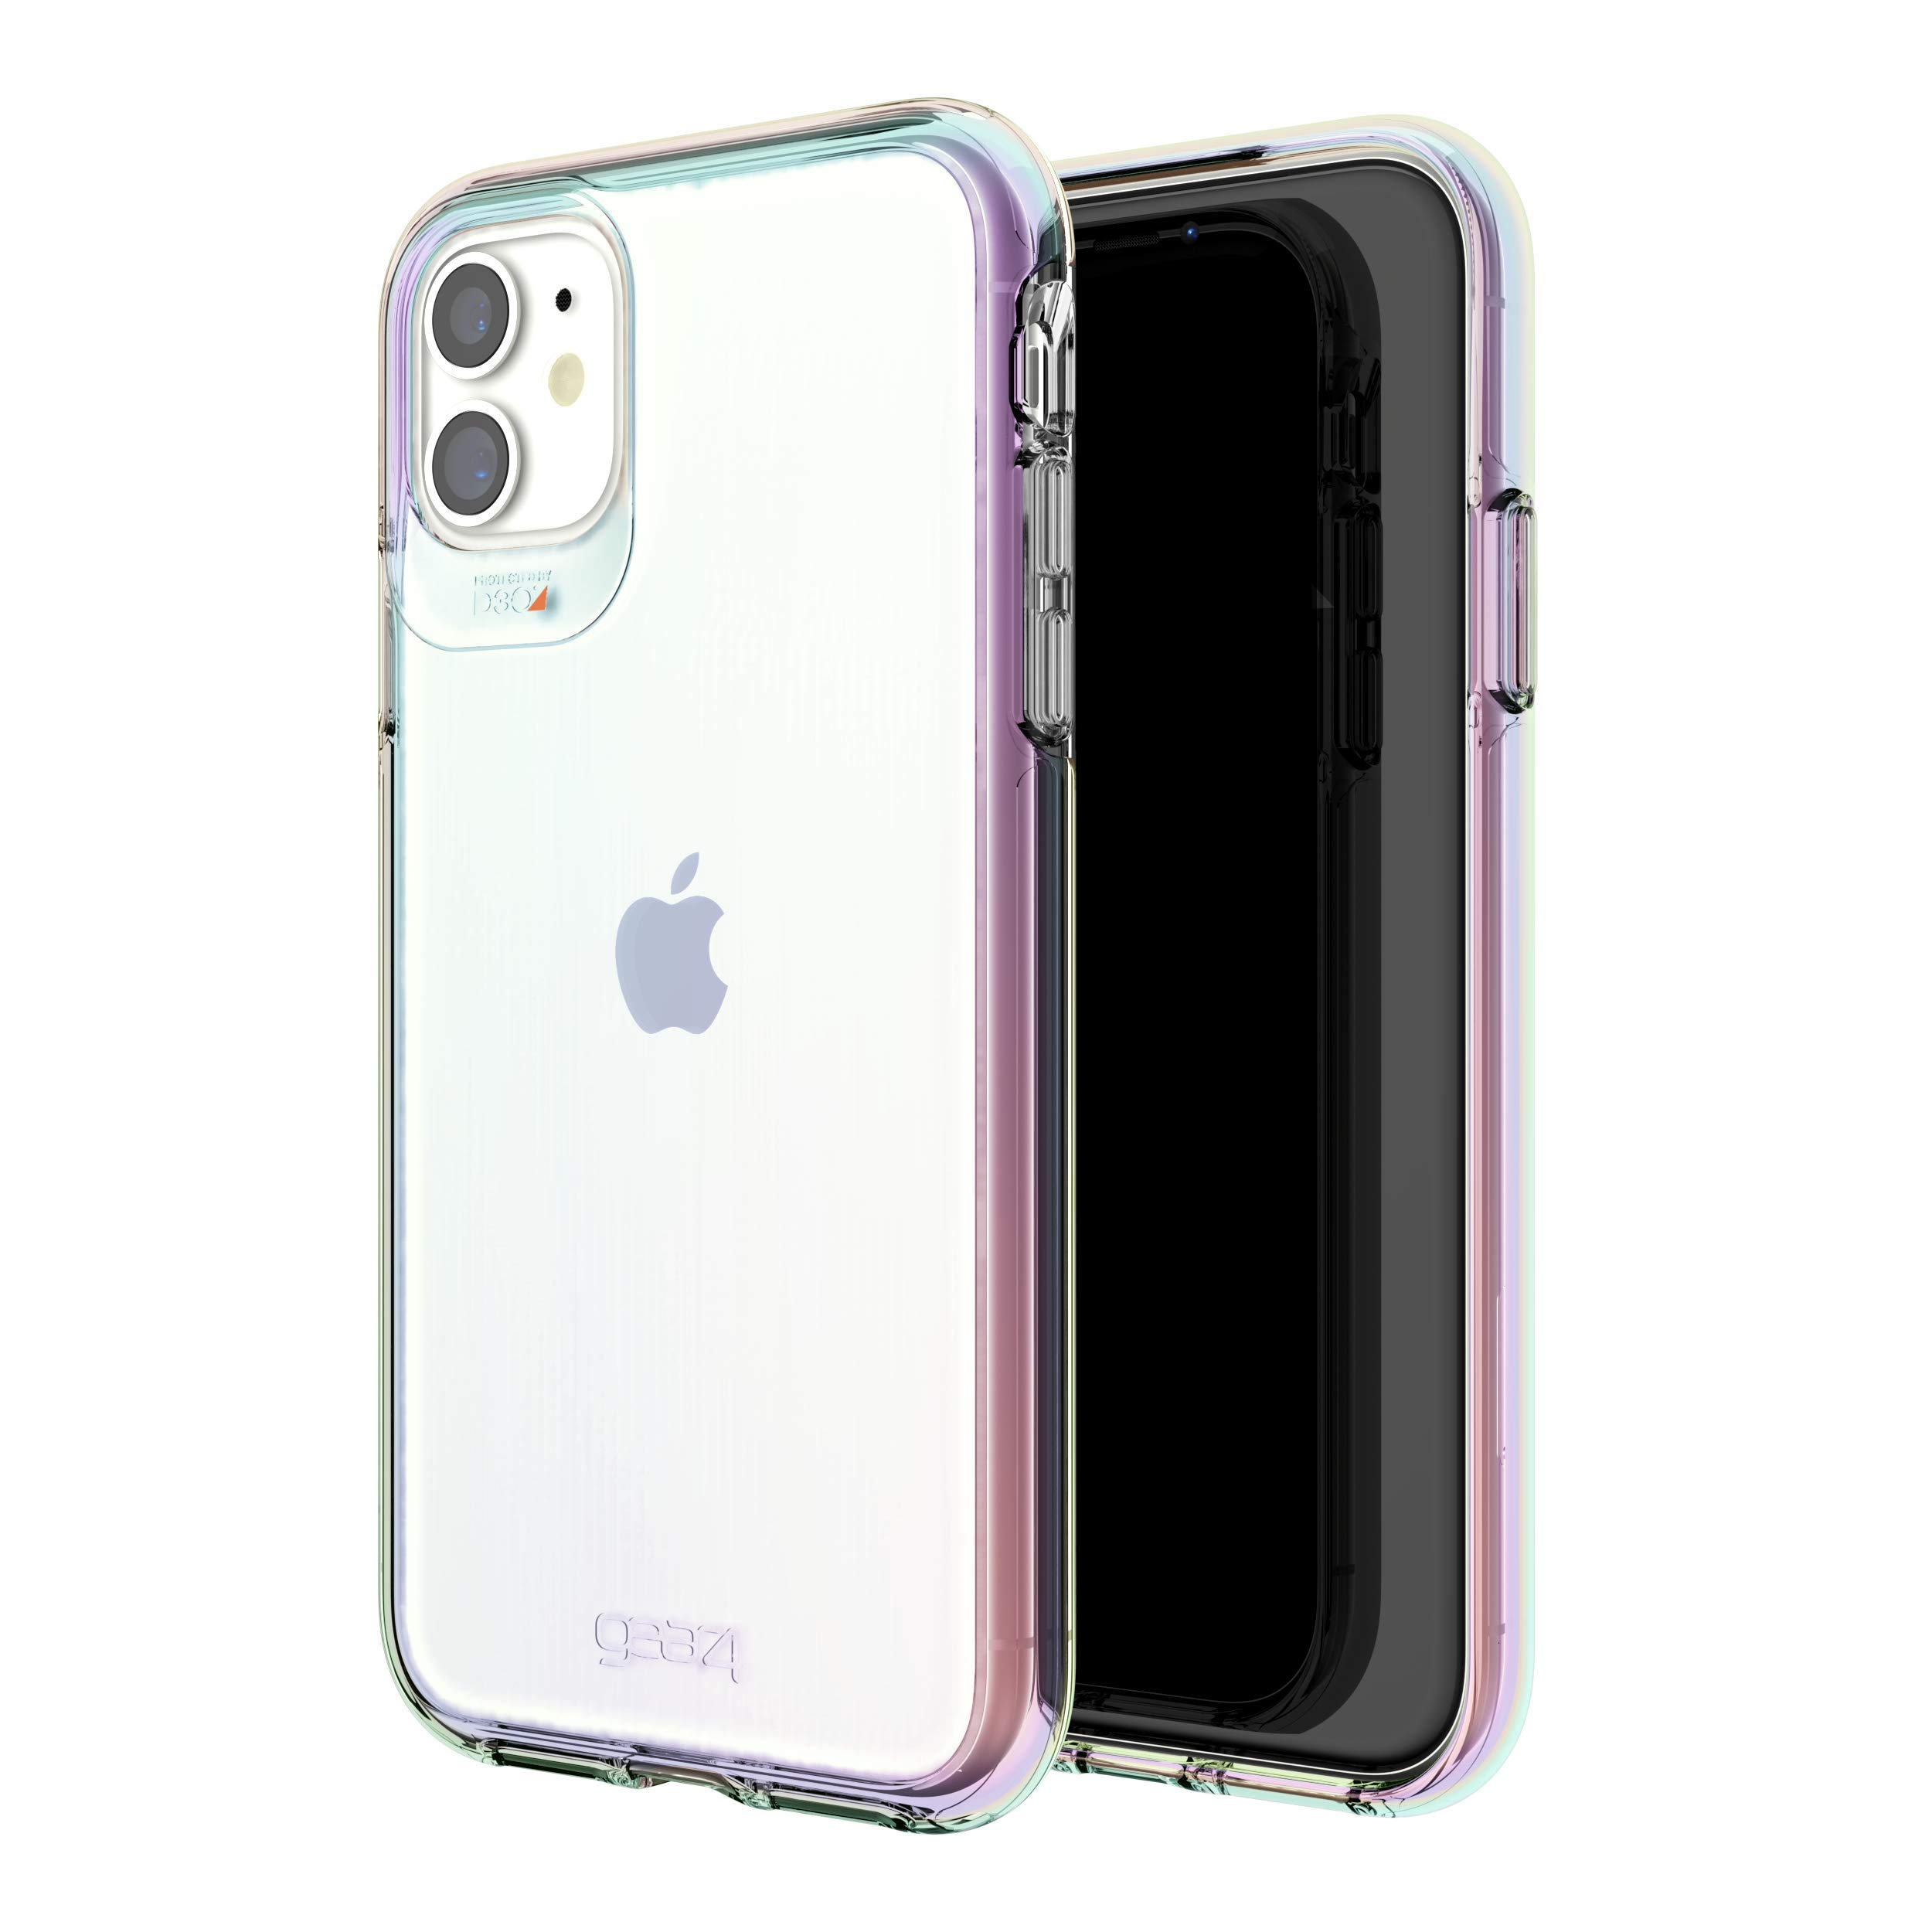 Gear4 Crystal Palace Iridescent Compatible with iPhone 11 Case, Advanced Impact Protection with Integrated D3O Technology, Anti-Yellowing, Phone Cover – Iridescent